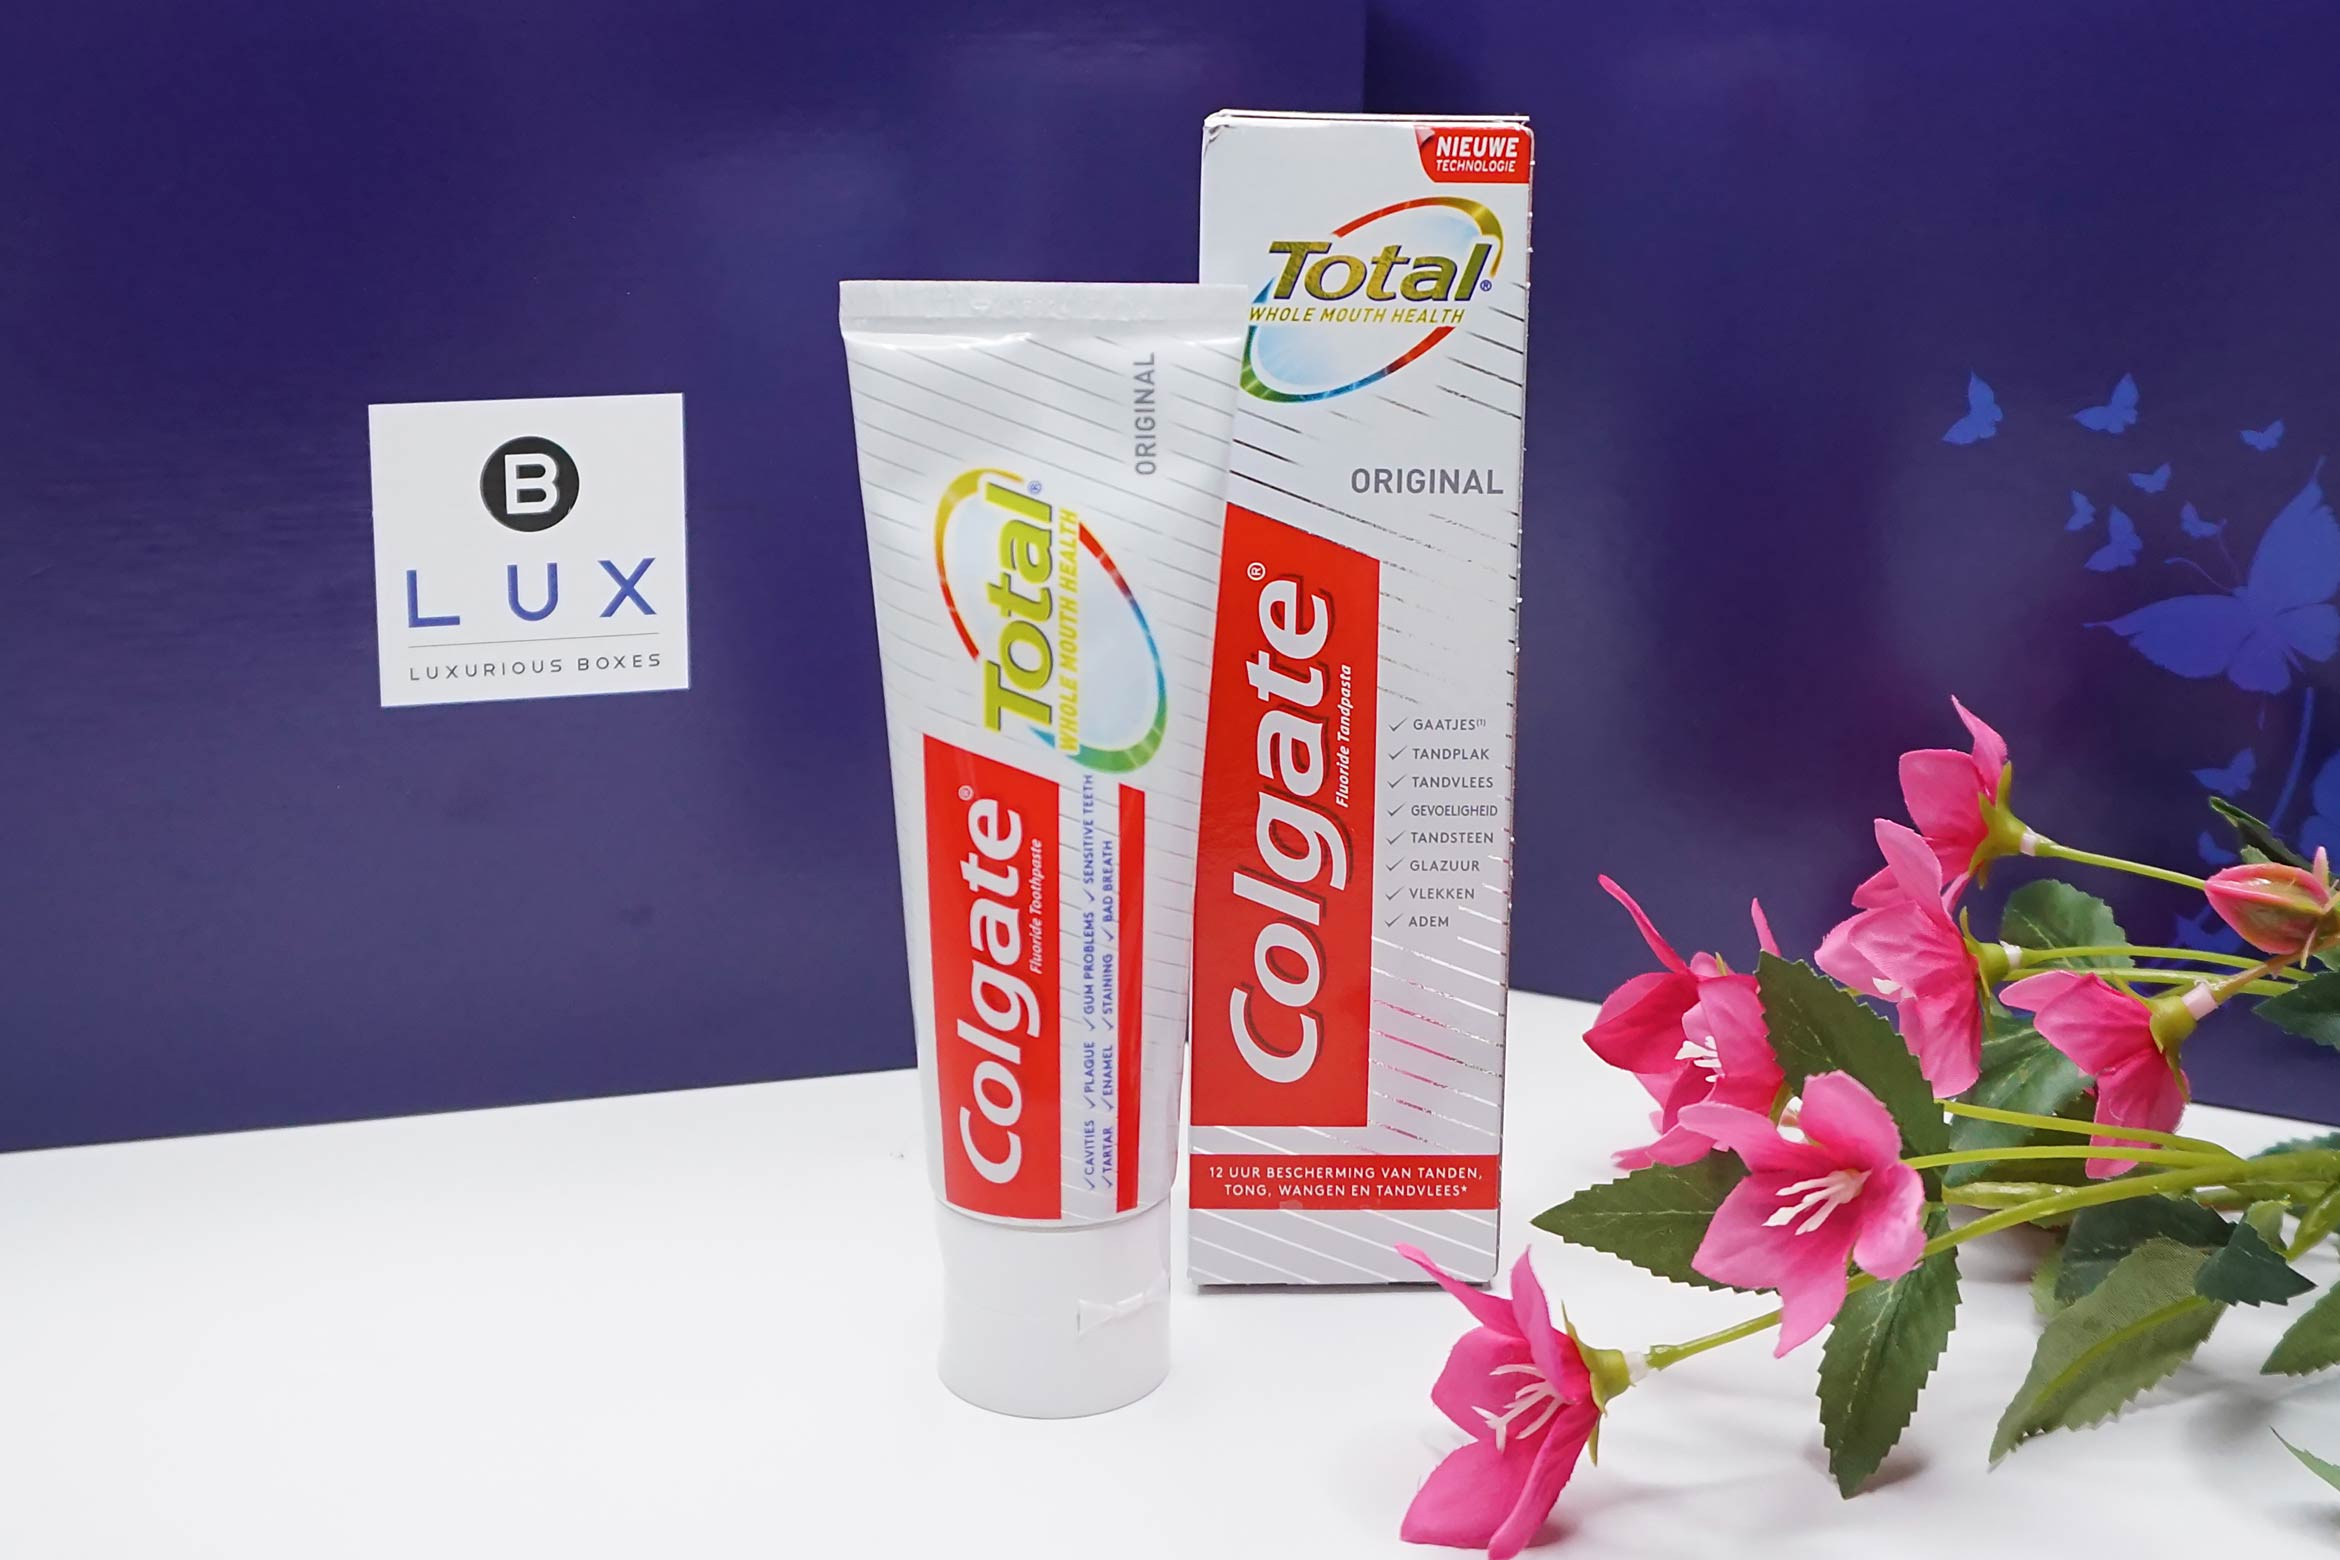 BLUX-box-maart-april-2019-review-colgate-total-tandpasta